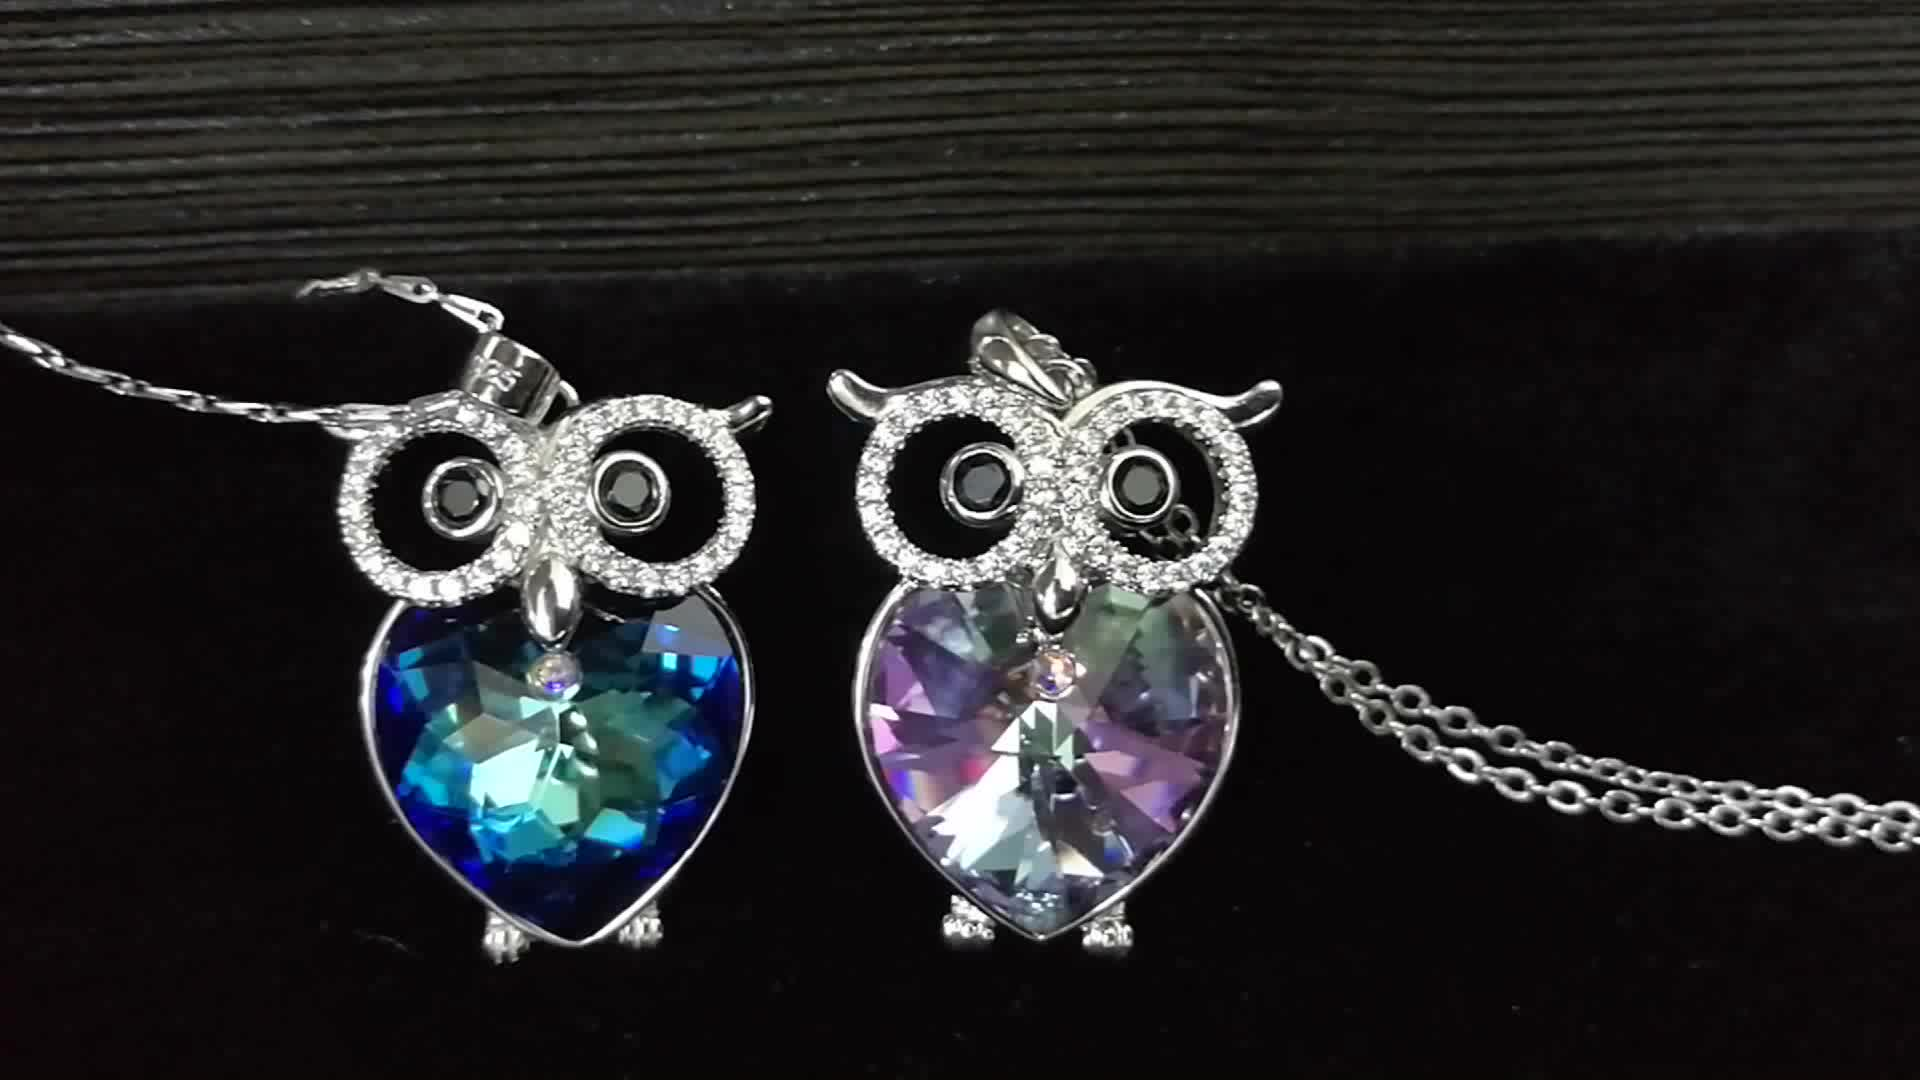 ODM OEM crystals from Swarovski manufacturer custom 925 sterling silver / brass charm owl pendant necklace jewelry